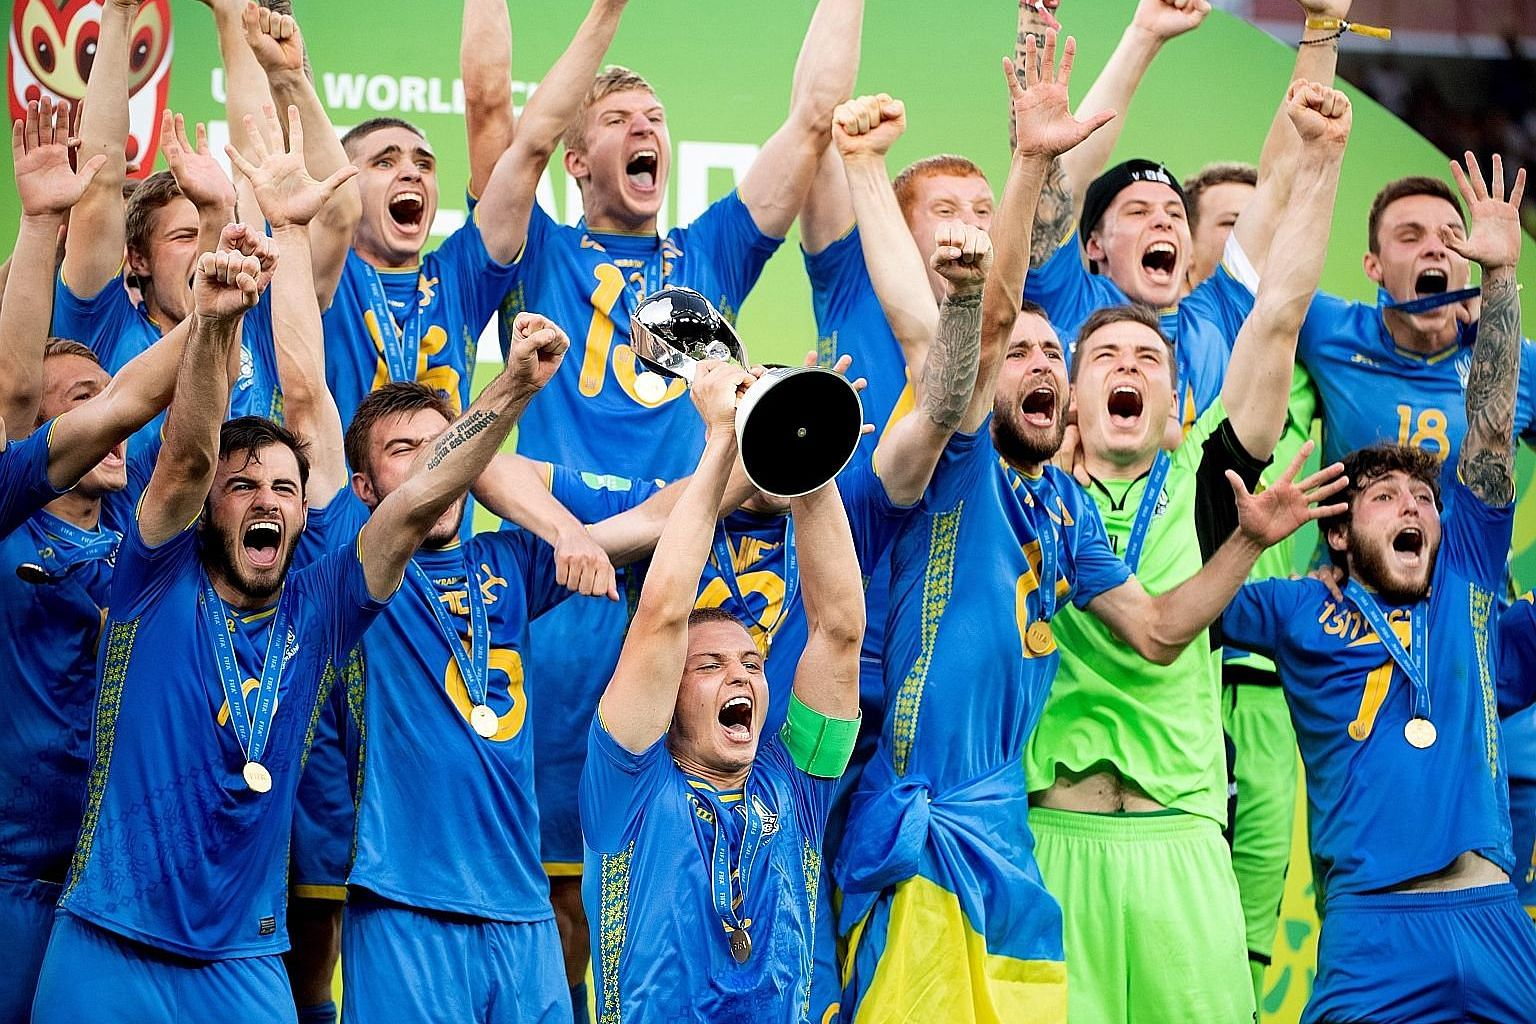 Ukrainian players celebrating after beating South Korea 3-1 in the final to lift the Fifa Under-20 World Cup in Lodz, Poland, on Saturday. Vladyslav Supriaha was the star for Ukraine, the 19-year-old Dynamo Kiev player scoring twice as his country wo